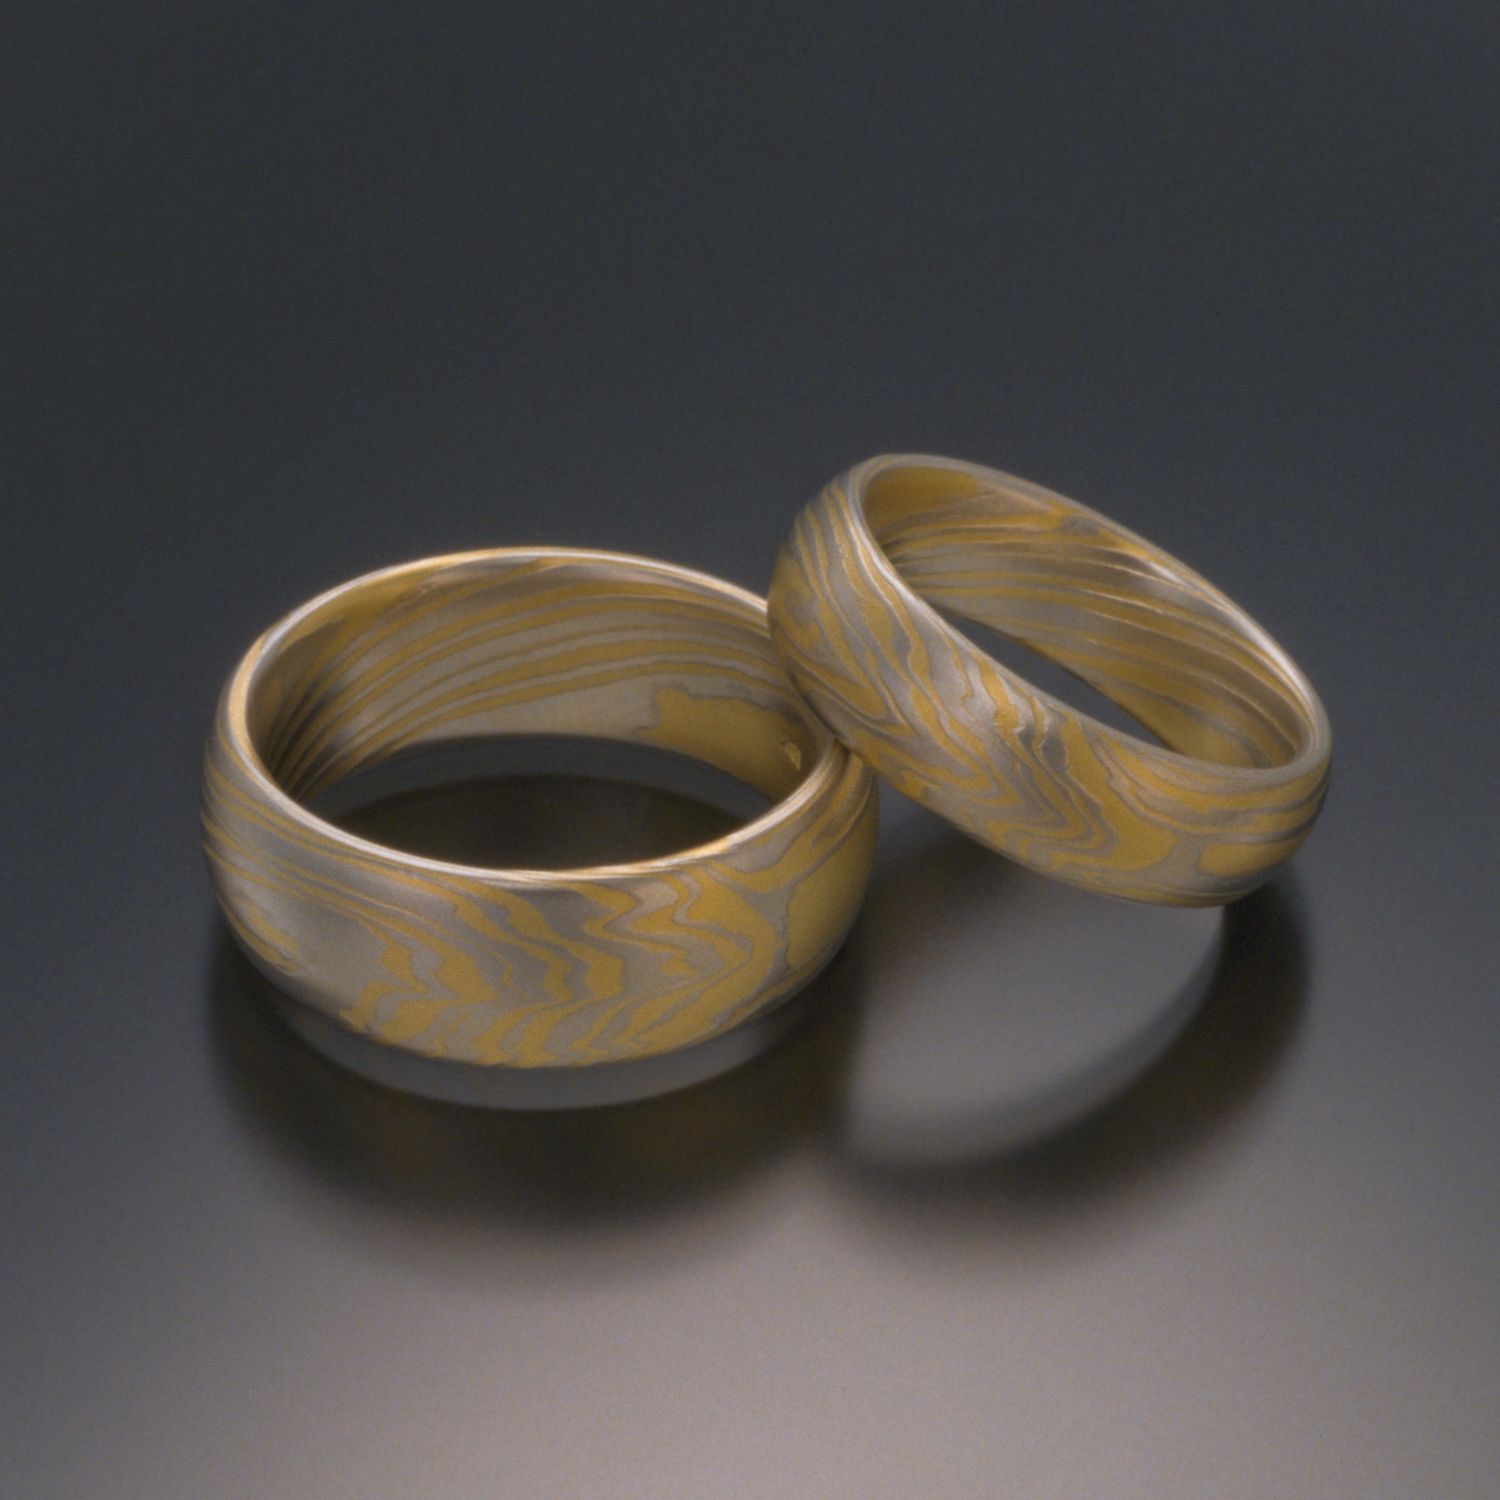 TERRA Platinum And Gold Mokume Gane Wedding Bands Are Classy Masculine The Amazing Organic Pattern Flows Around Ring From Detailed Figuring To More